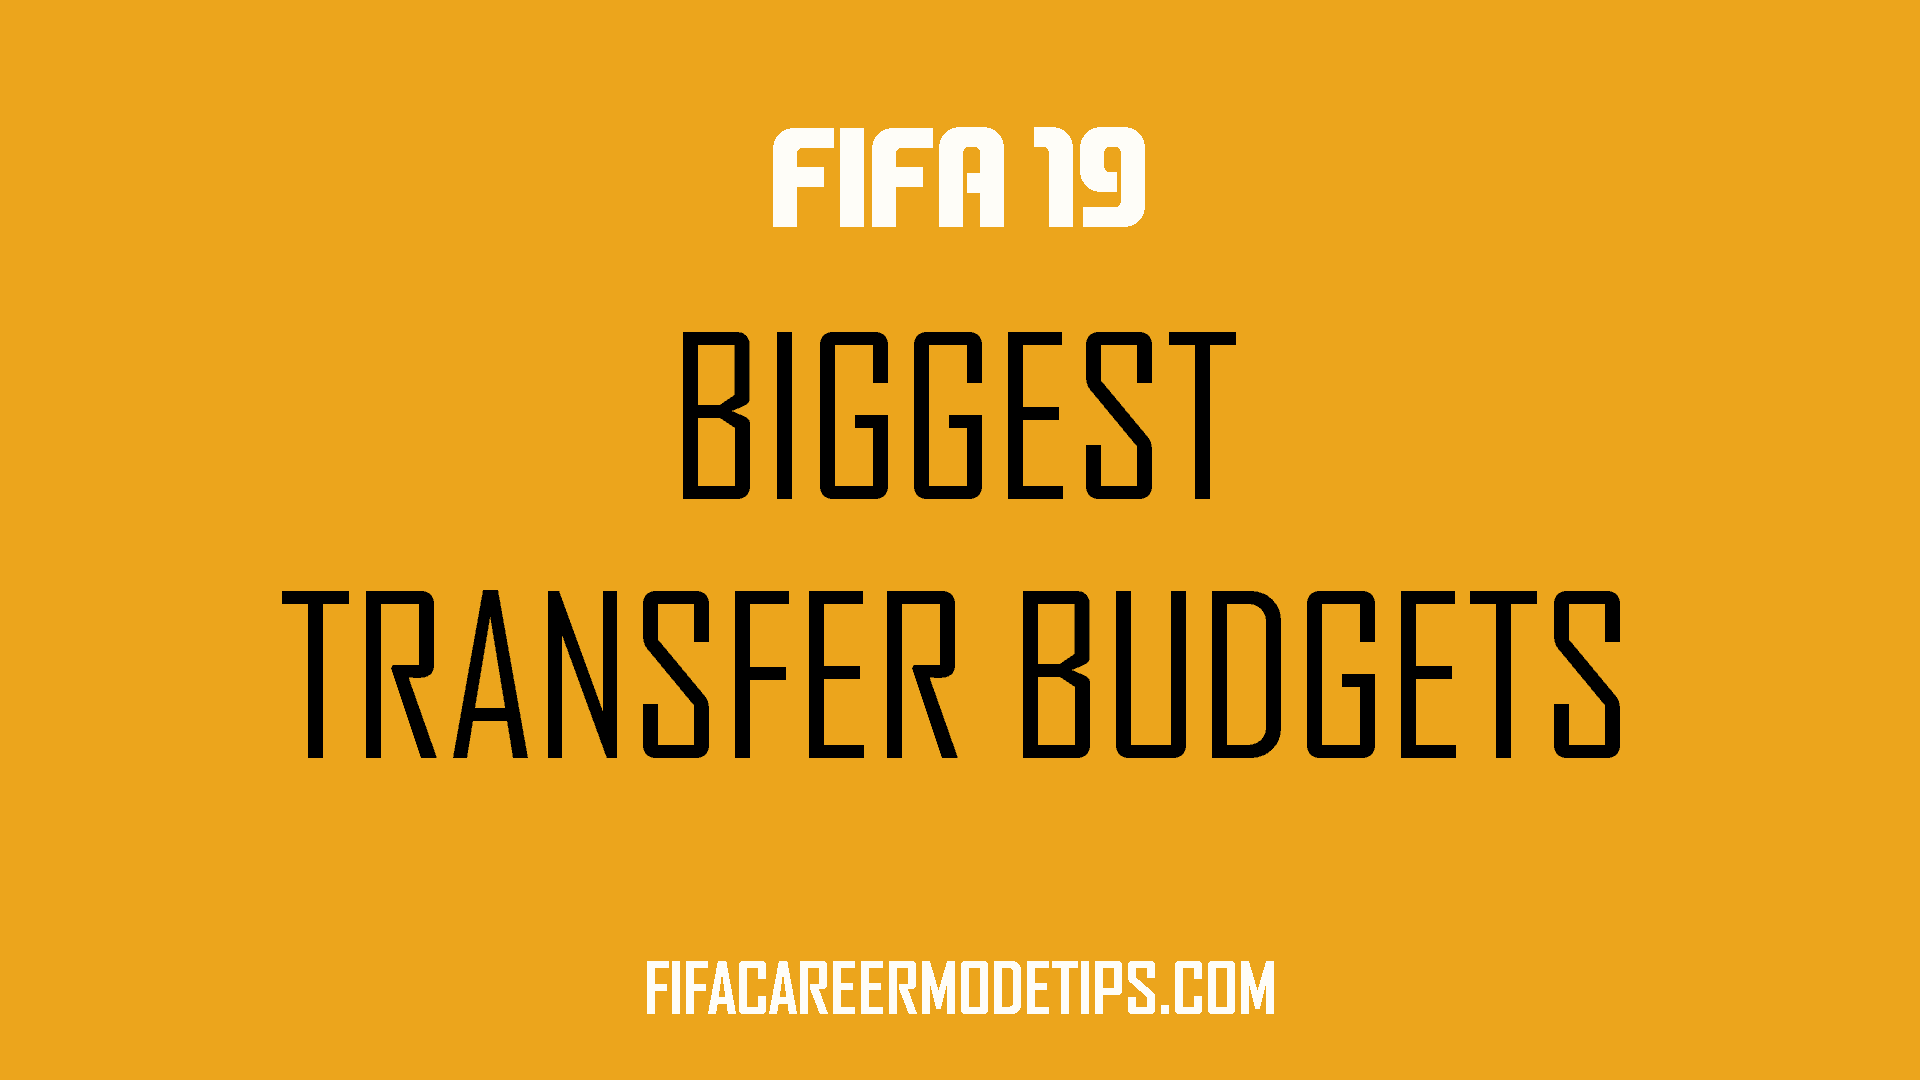 Biggest Starting Transfer Budgets in FIFA 19